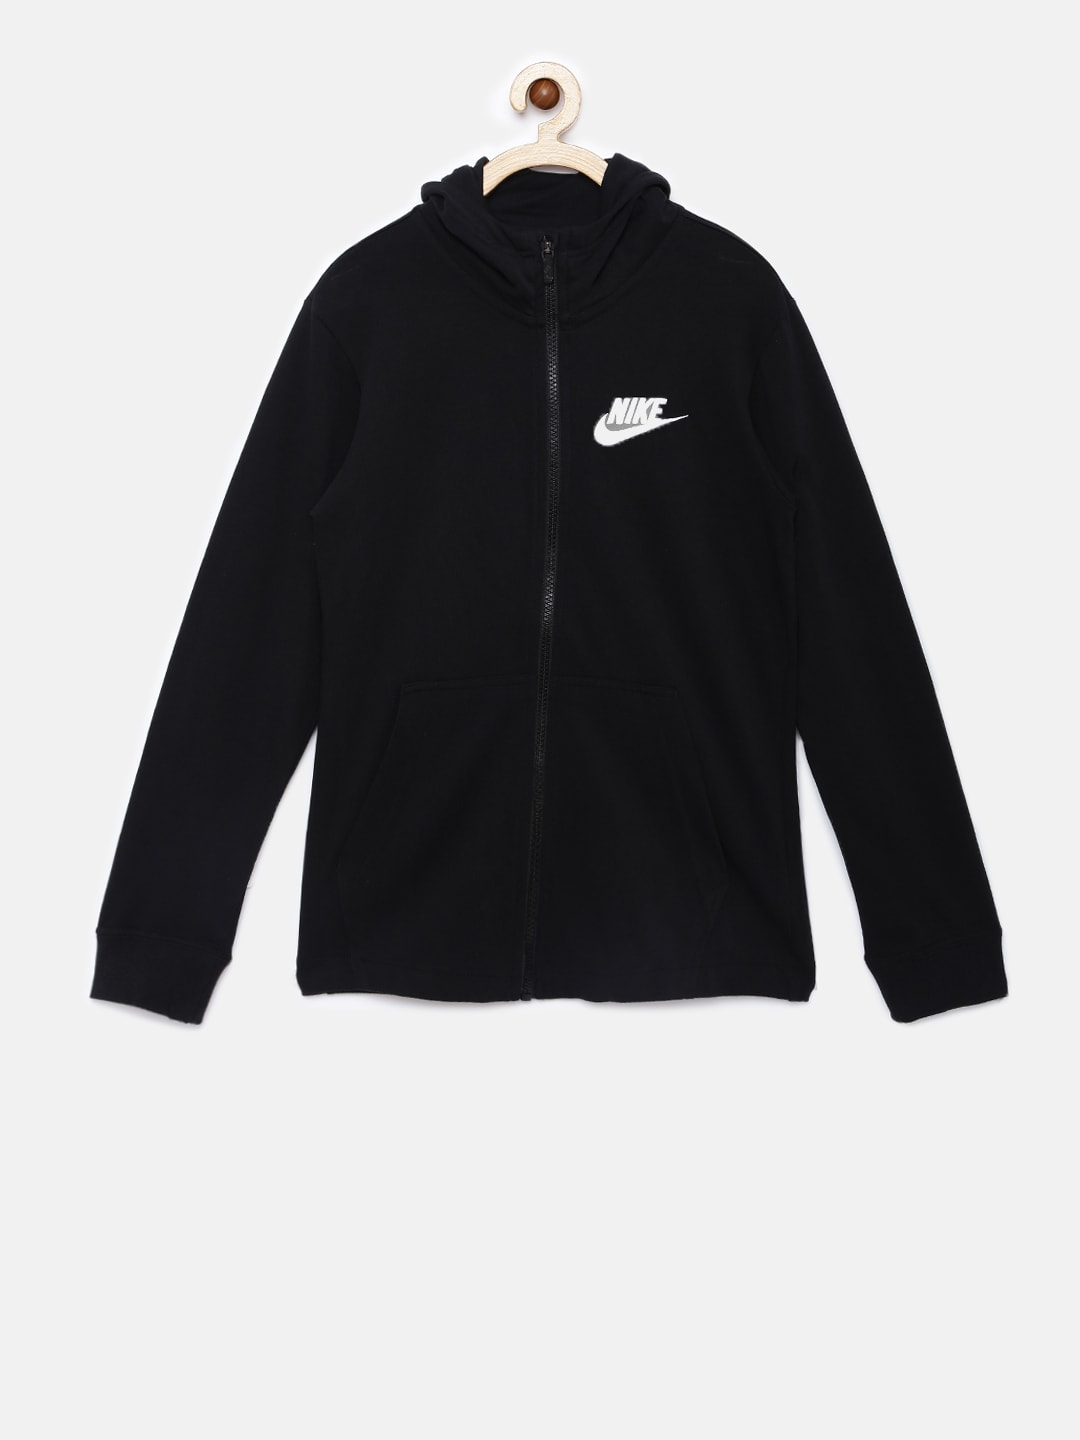 739071e0ee ... black and white  Nike Sweatshirts Buy Nike Sweatshirts for Men Women  Online in India . ...